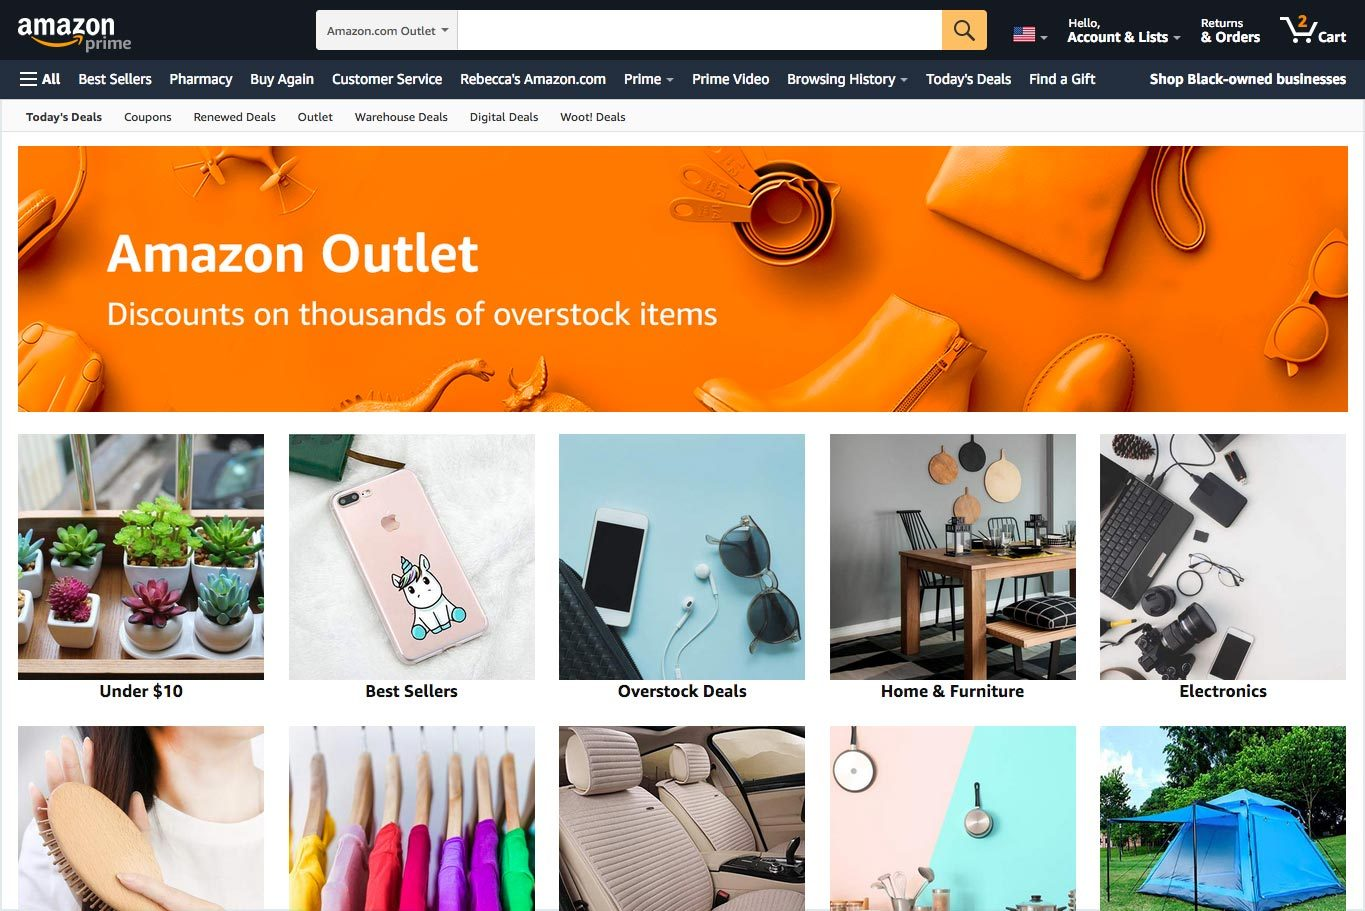 Amazon Outlet Page